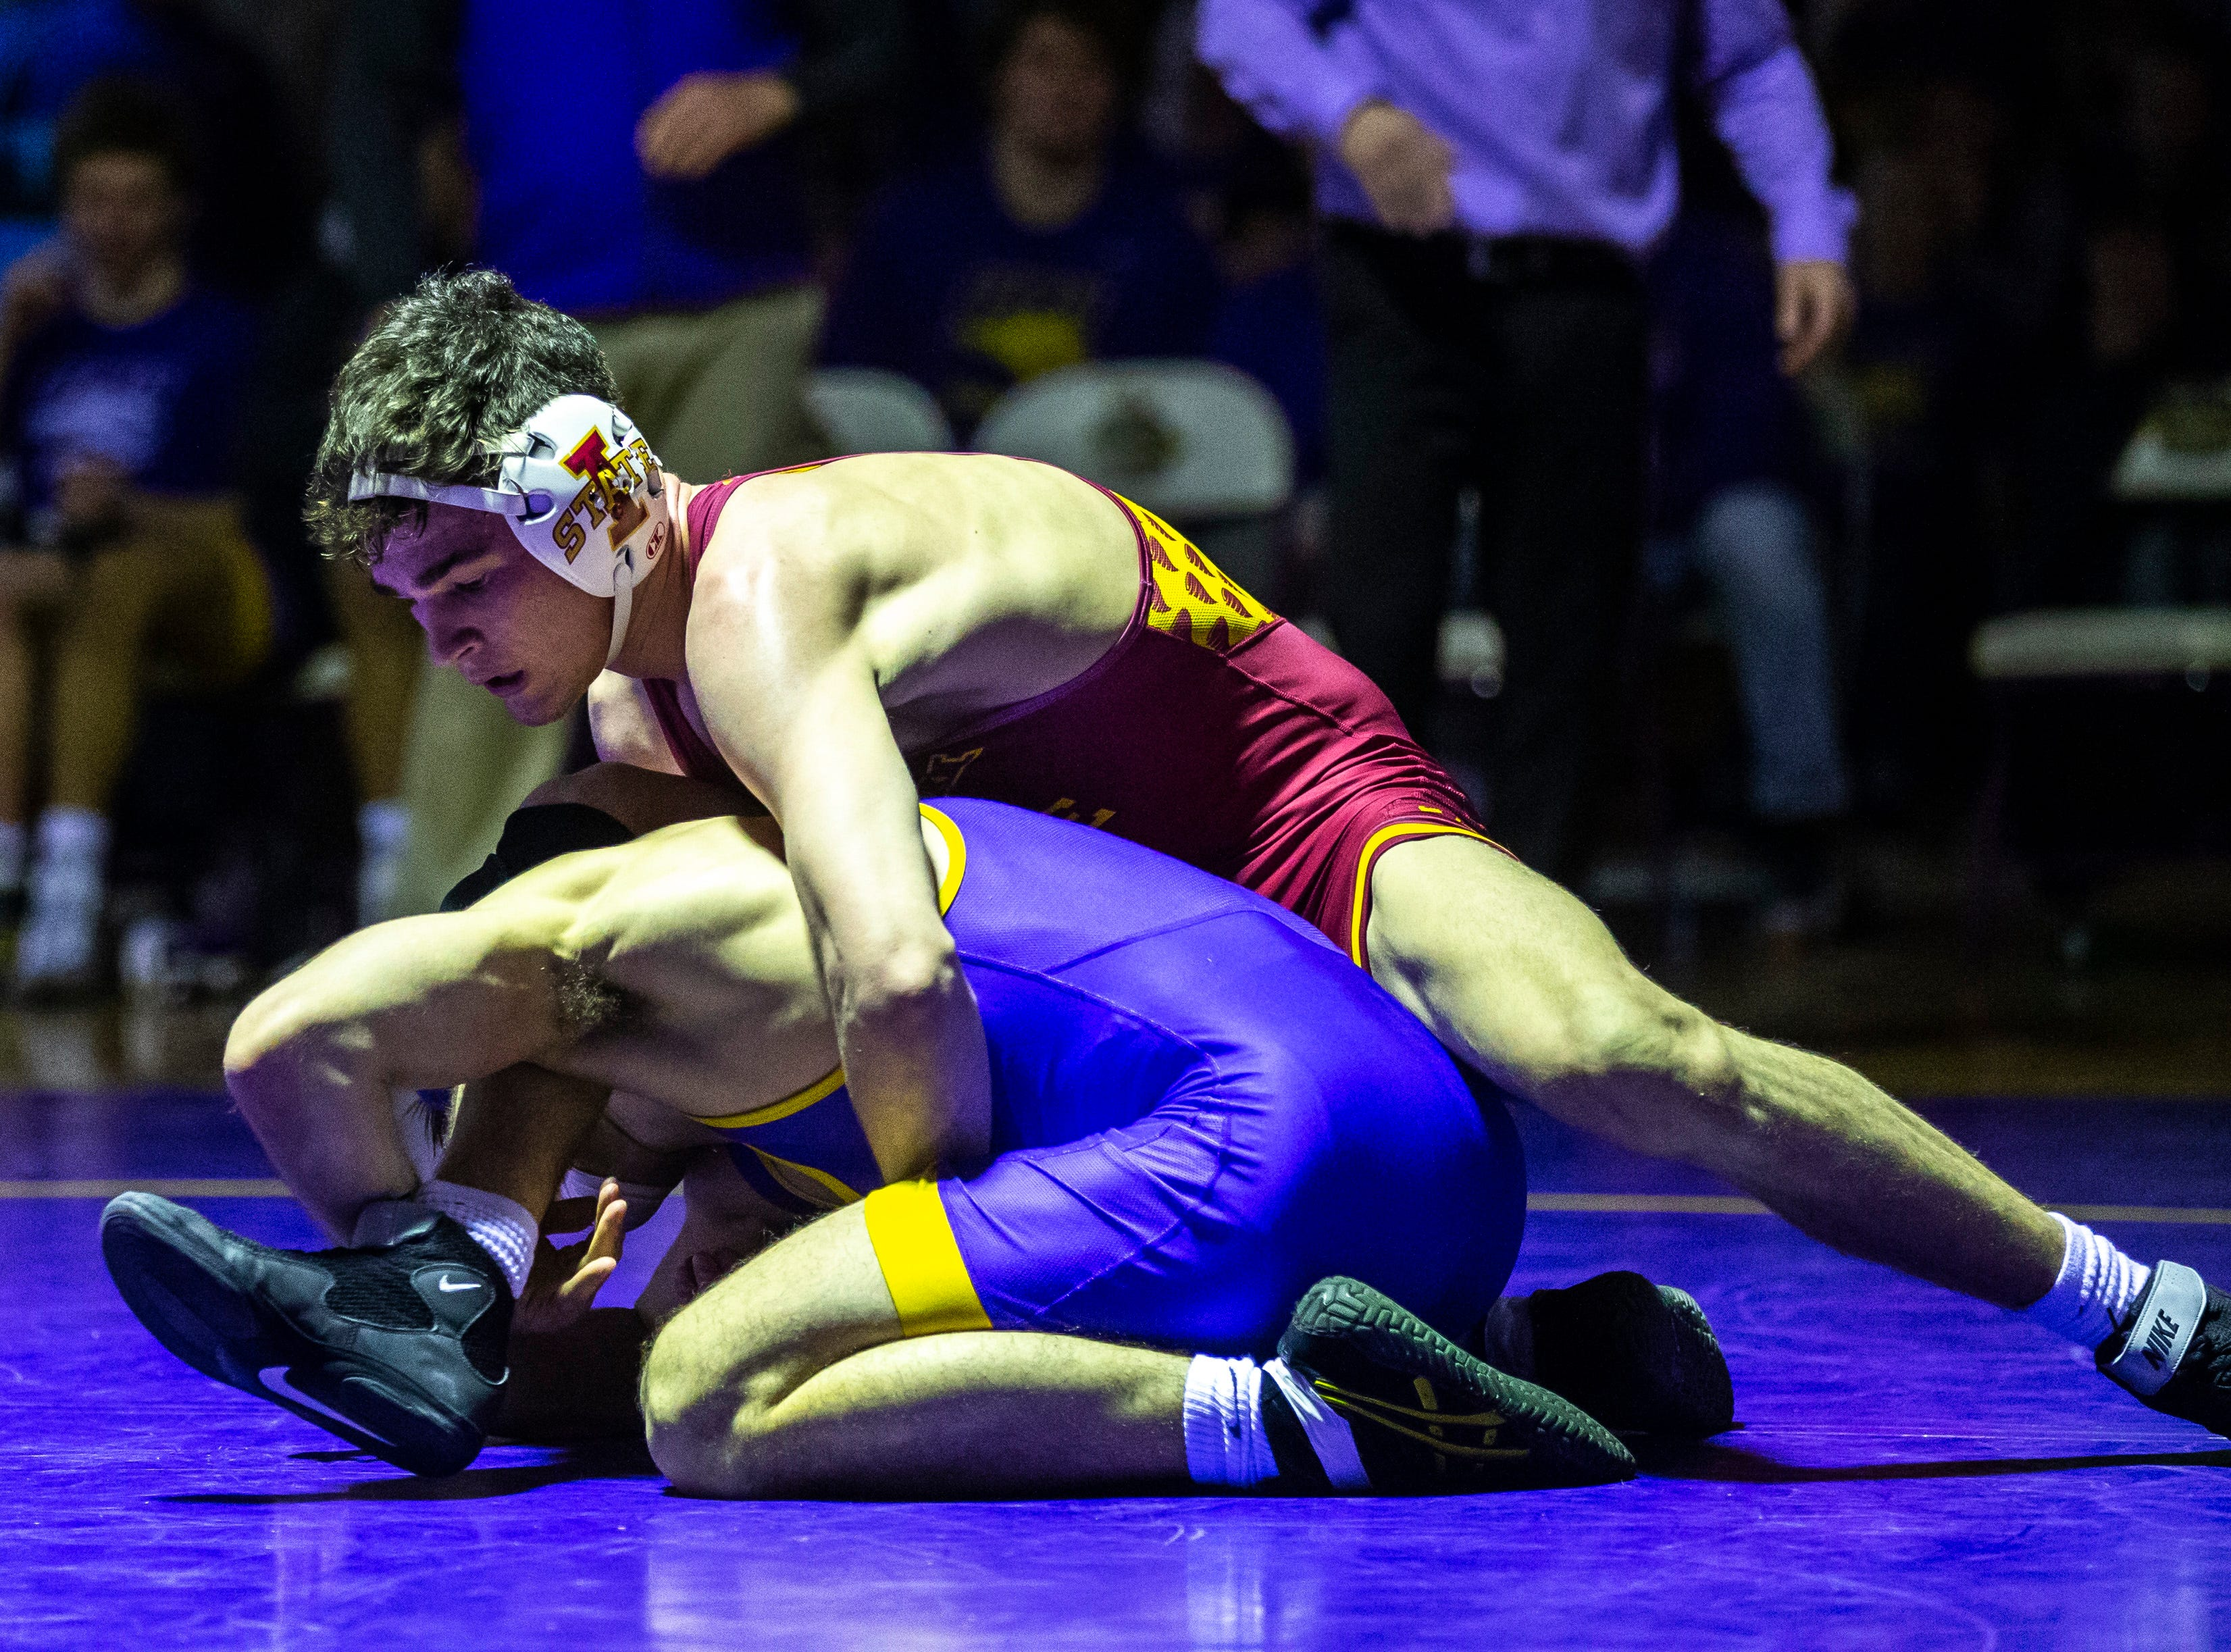 Northern Iowa's Max Thomsen wrestles Iowa State's Jarrett Degen at 149 during a NCAA Big 12 wrestling dual on Thursday, Feb. 21, 2019 at the West Gymnasium in Cedar Falls, Iowa.